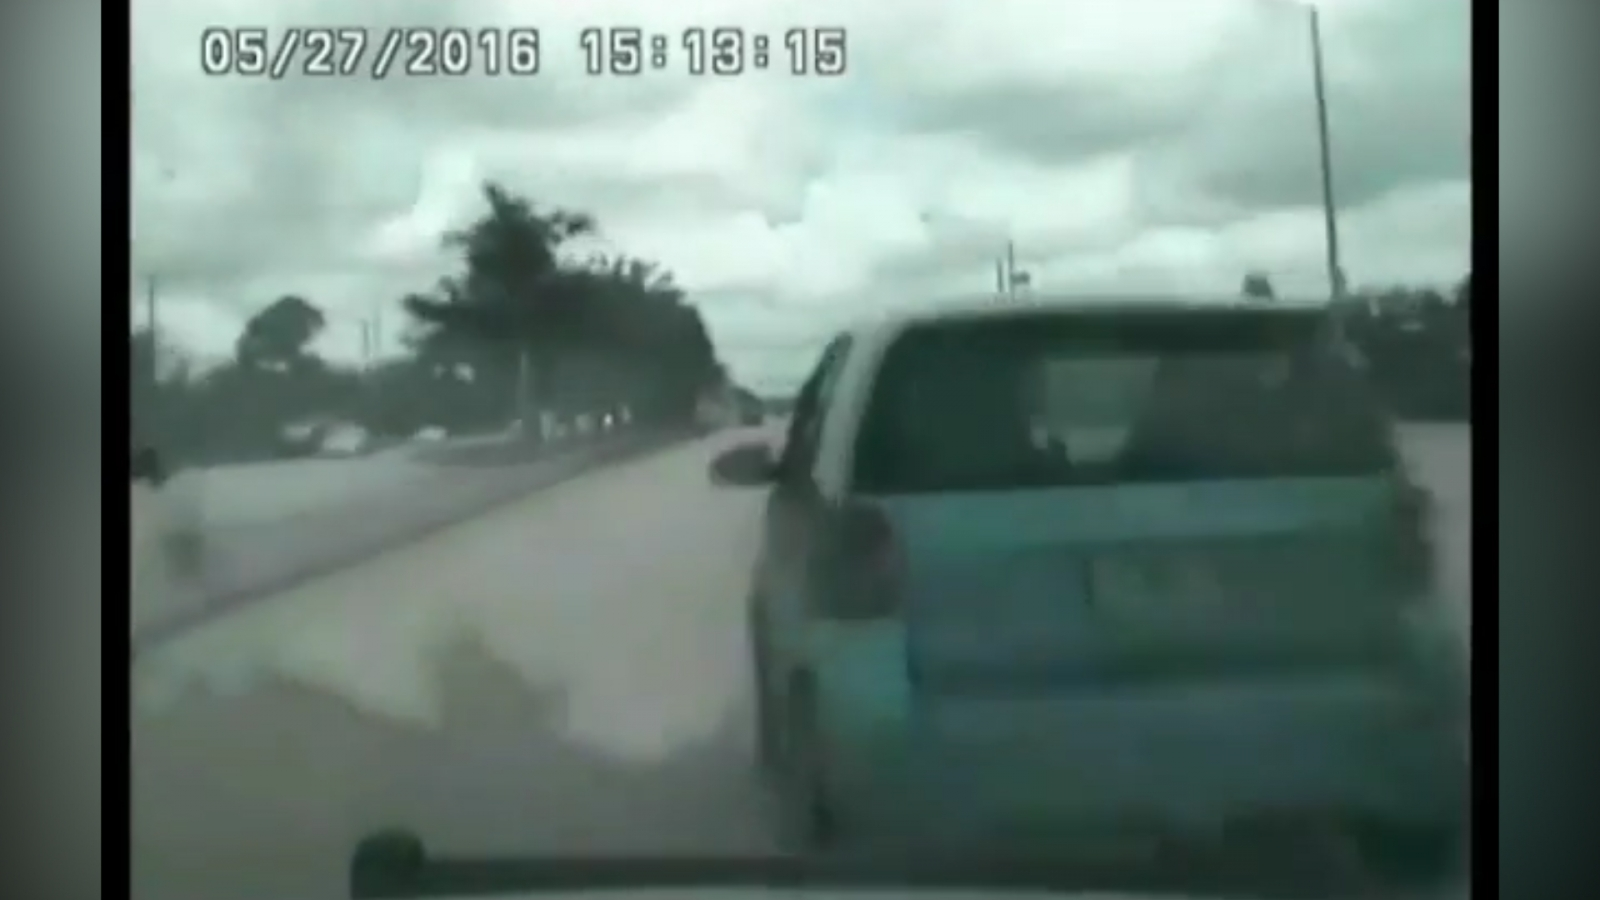 shocking-footage-captures-moment-speeding-police-officer-plows-into-car-at-104mph